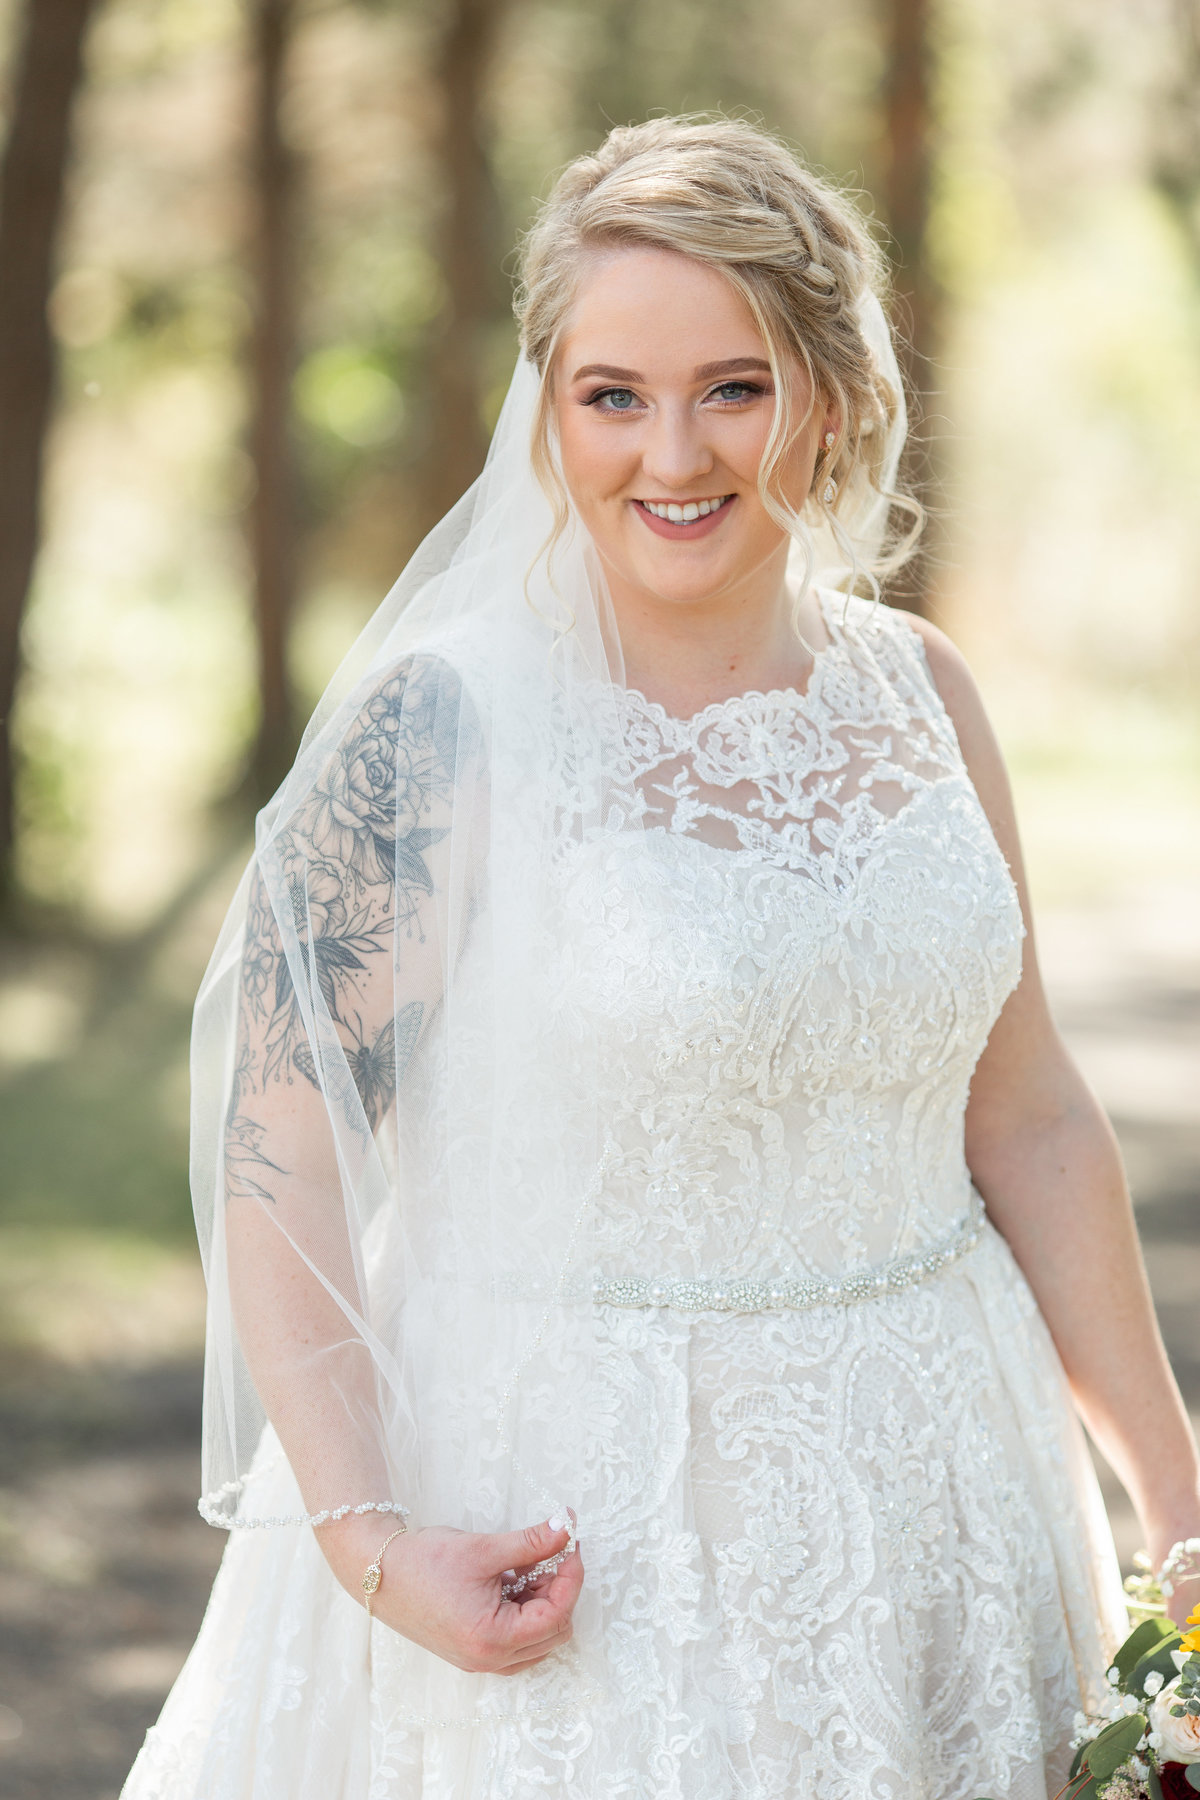 Ohio Wedding Photographer - Best 2019-224